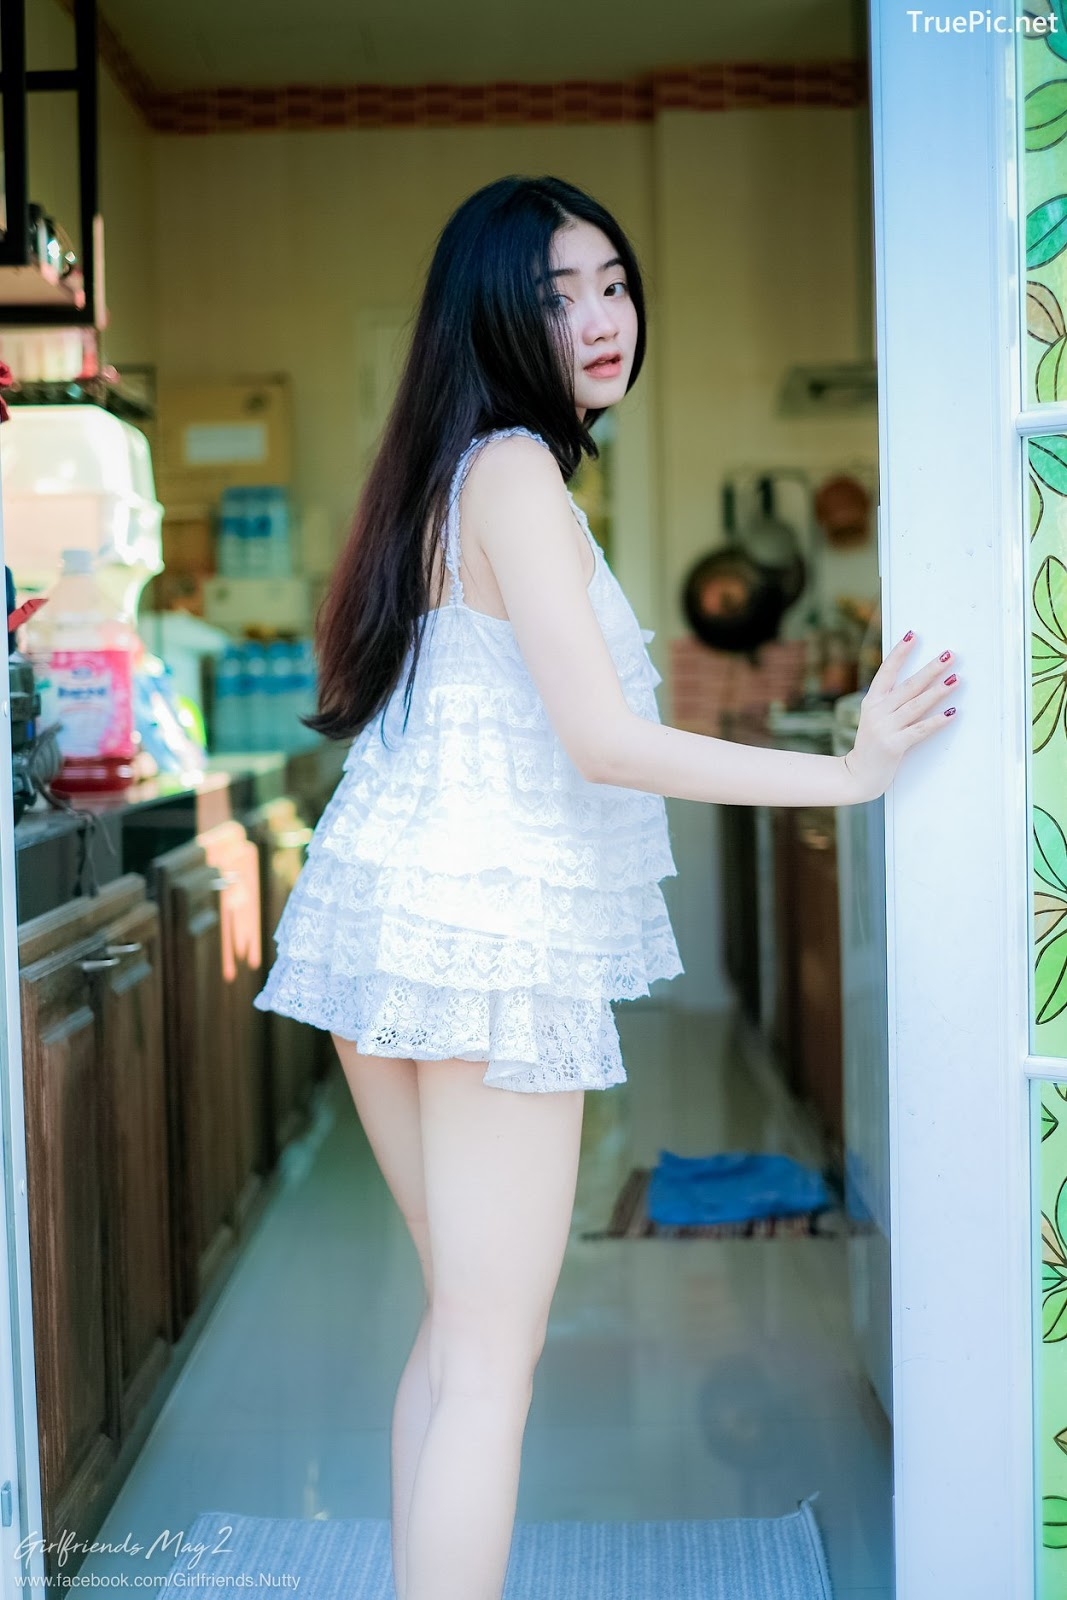 Image Thailand Model - Cholticha Intapuang - Sunsight on Backyard - TruePic.net - Picture-1